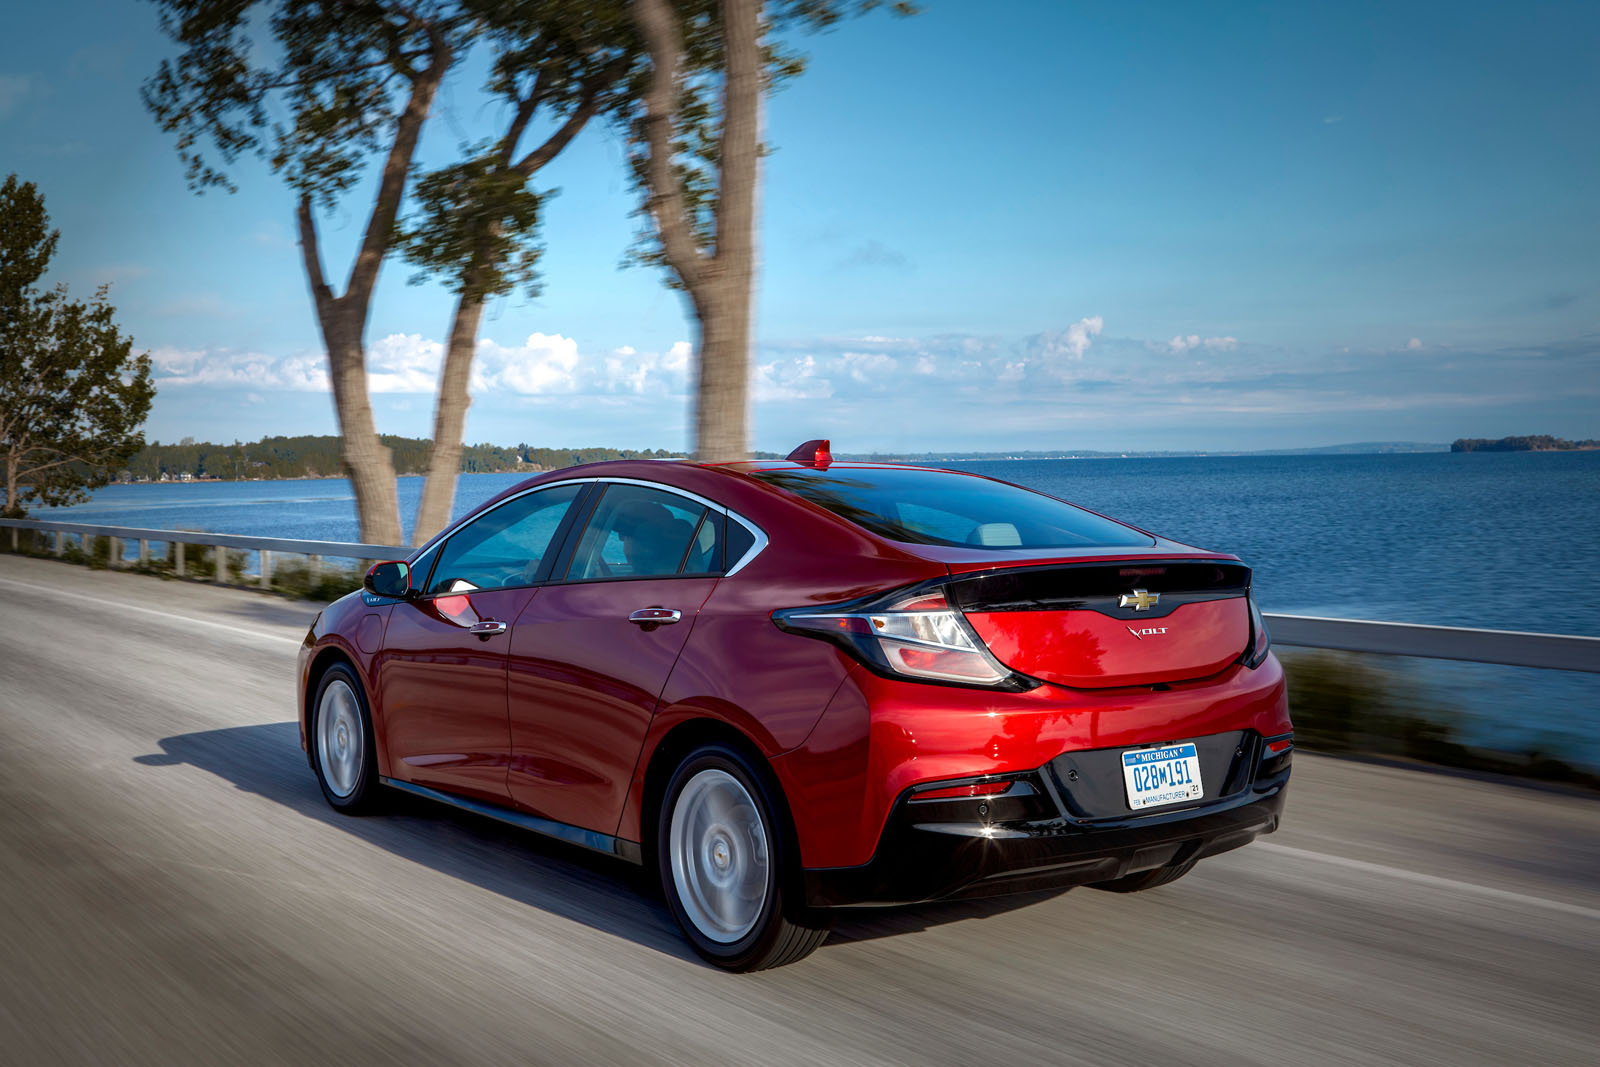 2019 Chevrolet Volt Review 09